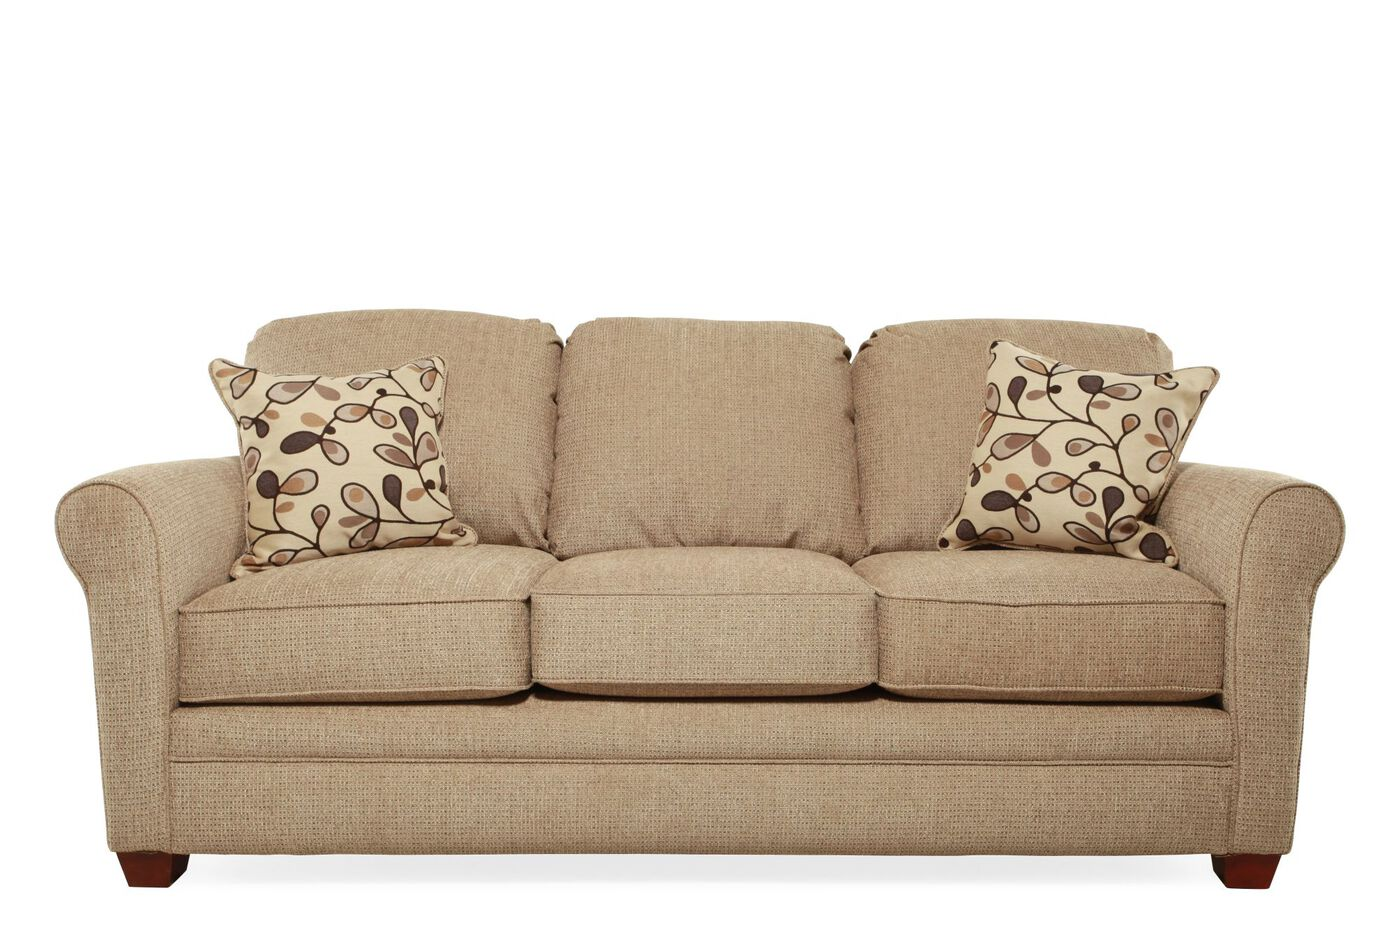 Mathis Brothers Bedroom Furniture Sofa Beds Sleepers Mathis Brothers Furniture Stores